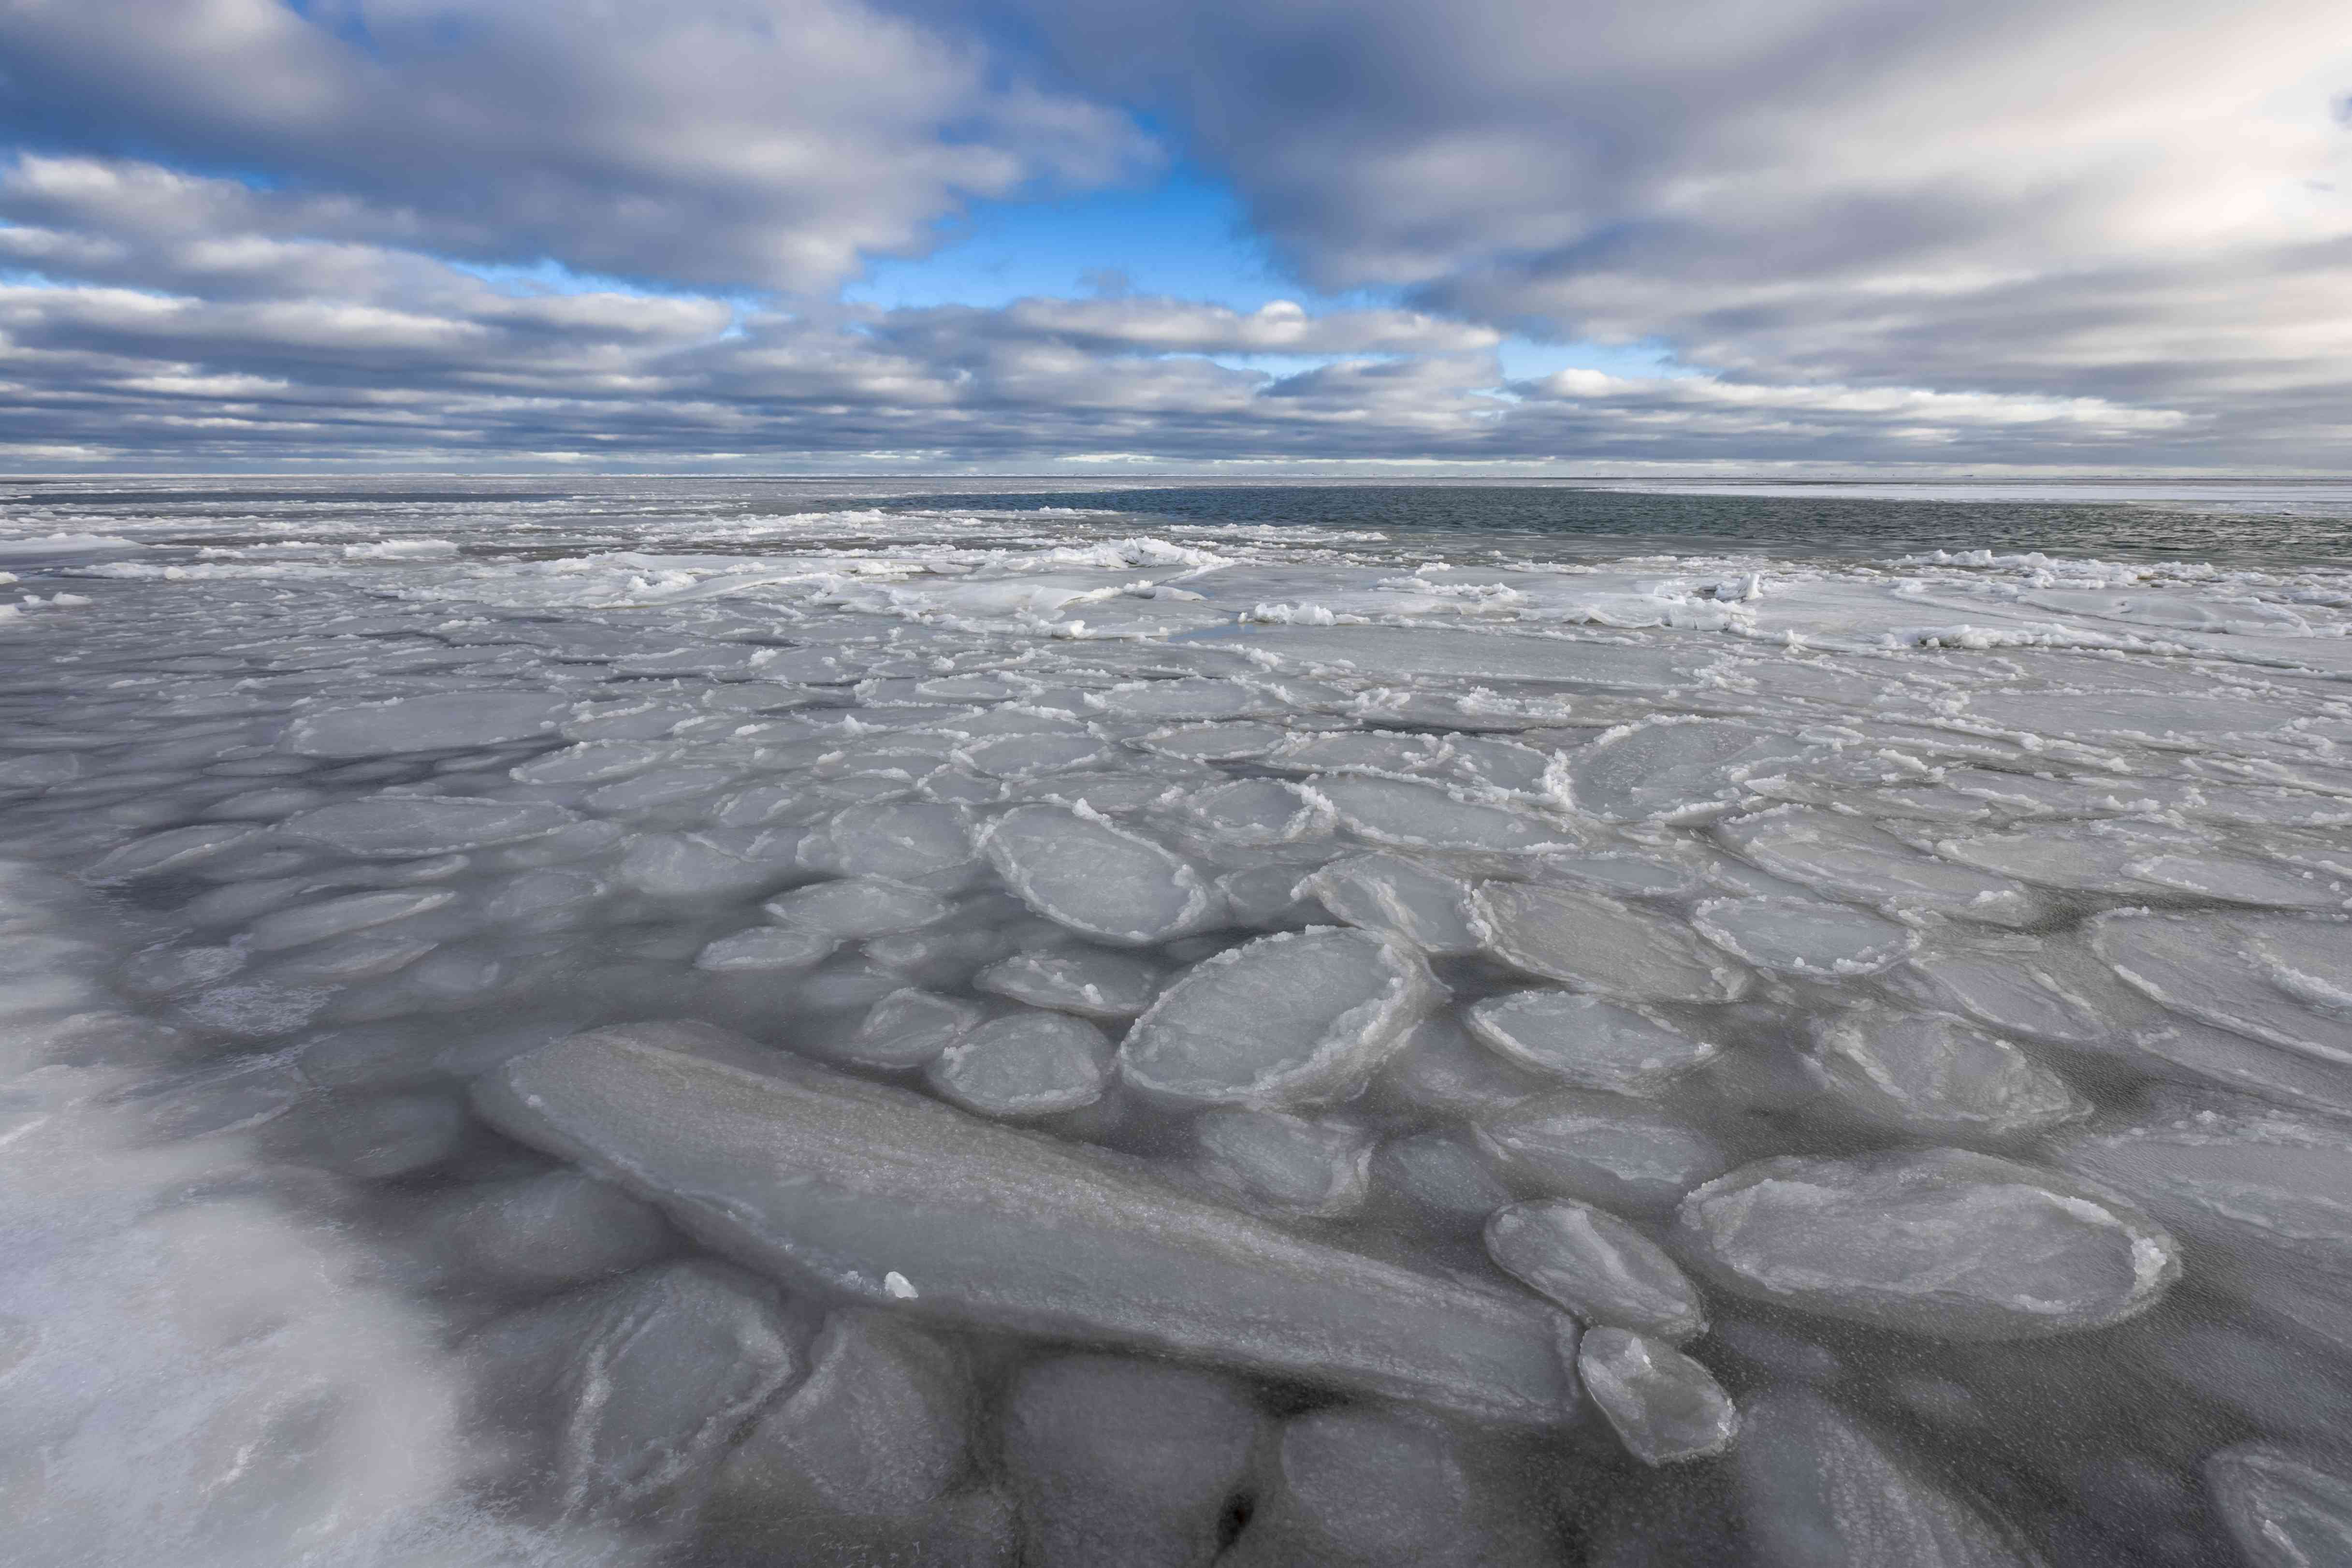 Pancake ice forms on the Beaufort Sea